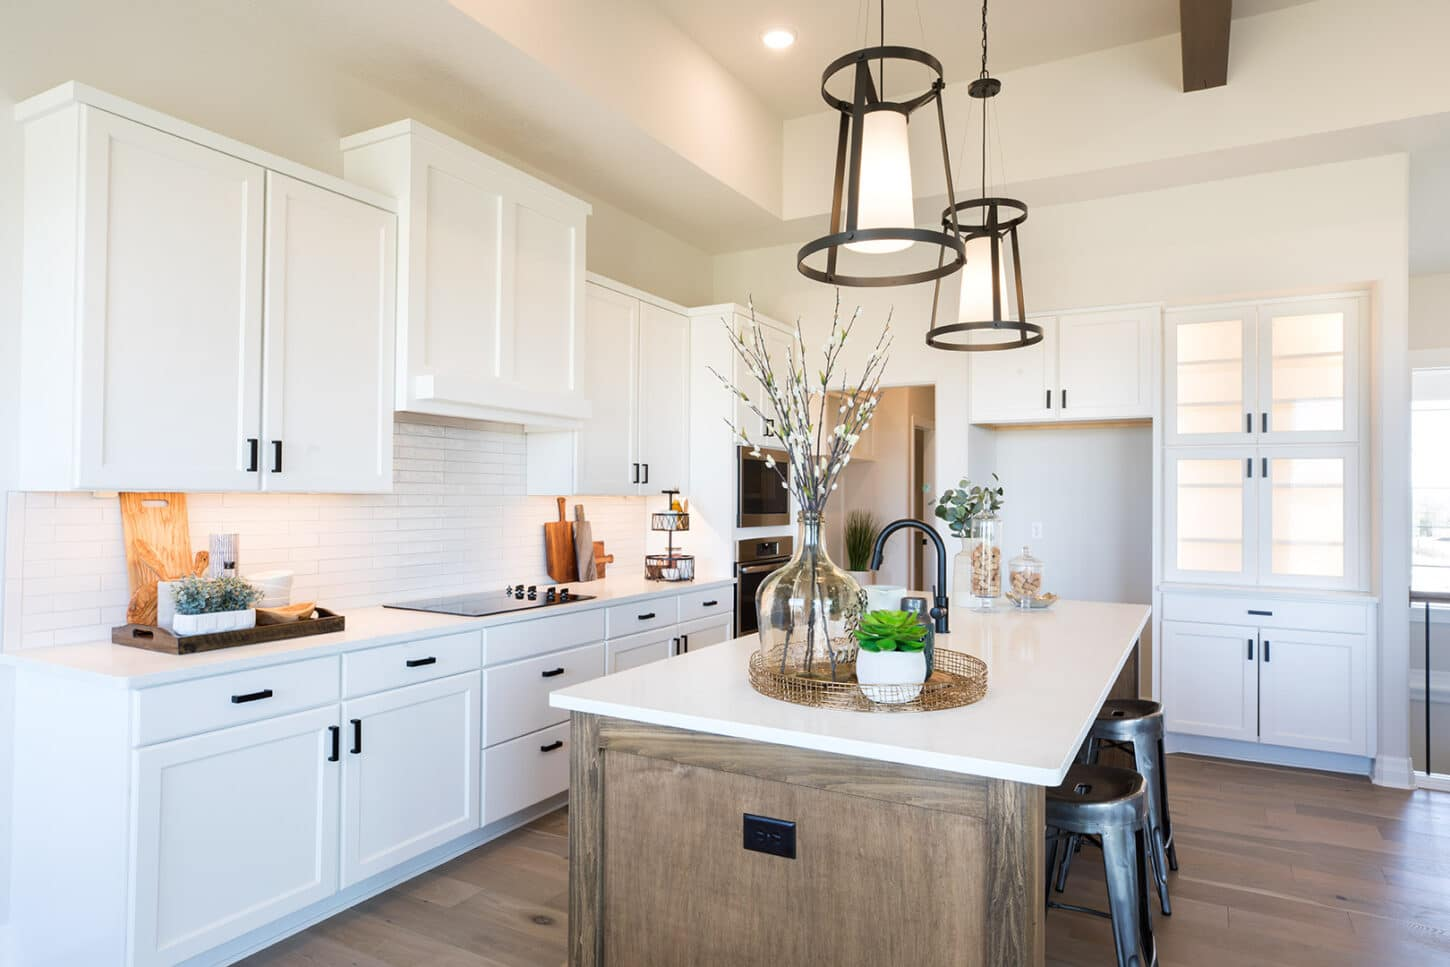 Andover Model Home